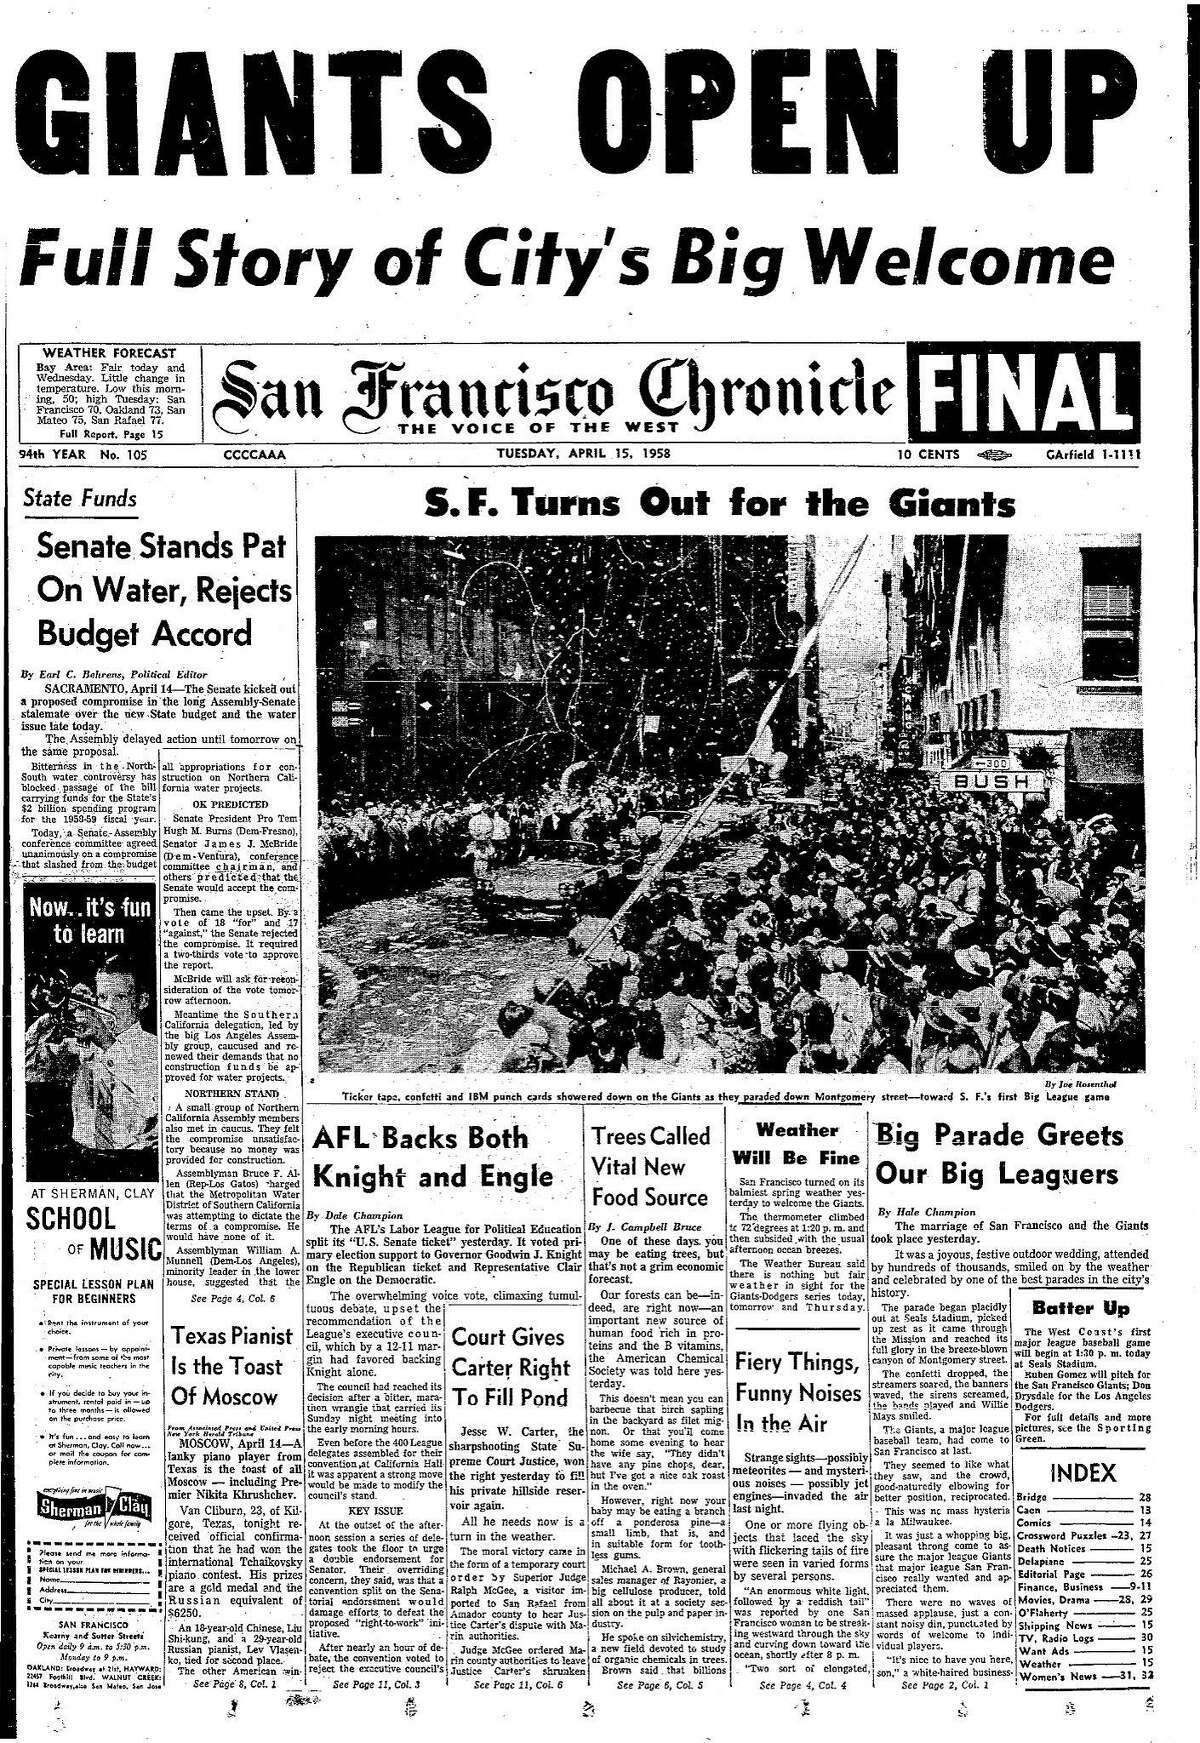 Historic Chronicle Front Page April 15, 1958 Opening Day parade for Giants who will be opening at Seal Stadium this day Chron365, Chroncover